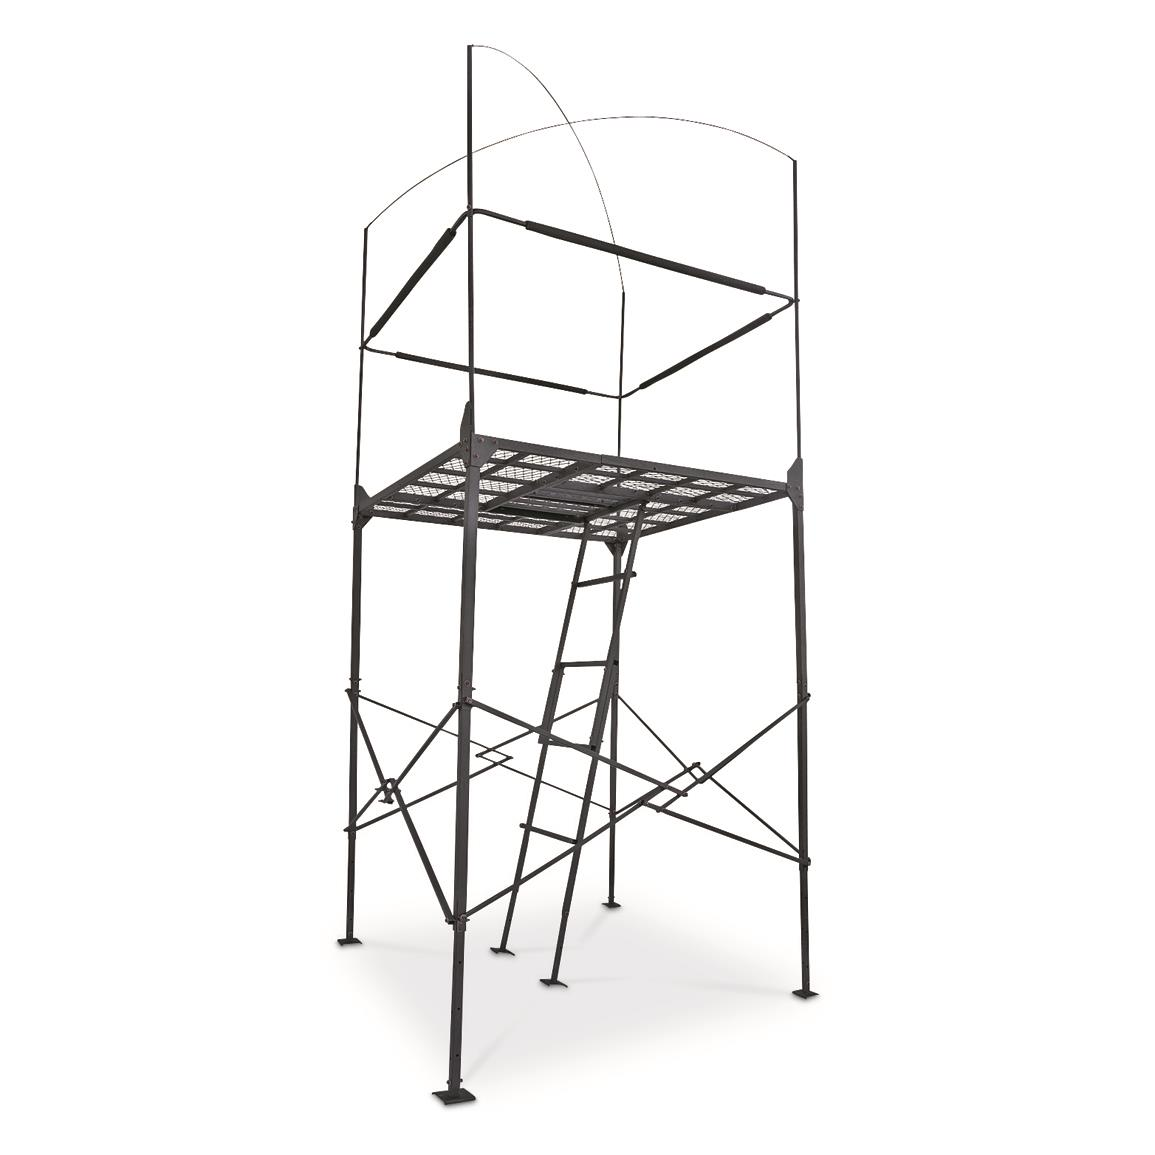 1155x1155 Primal Tree Stands 7' Homestead Quad Pod Stand With Enclosure